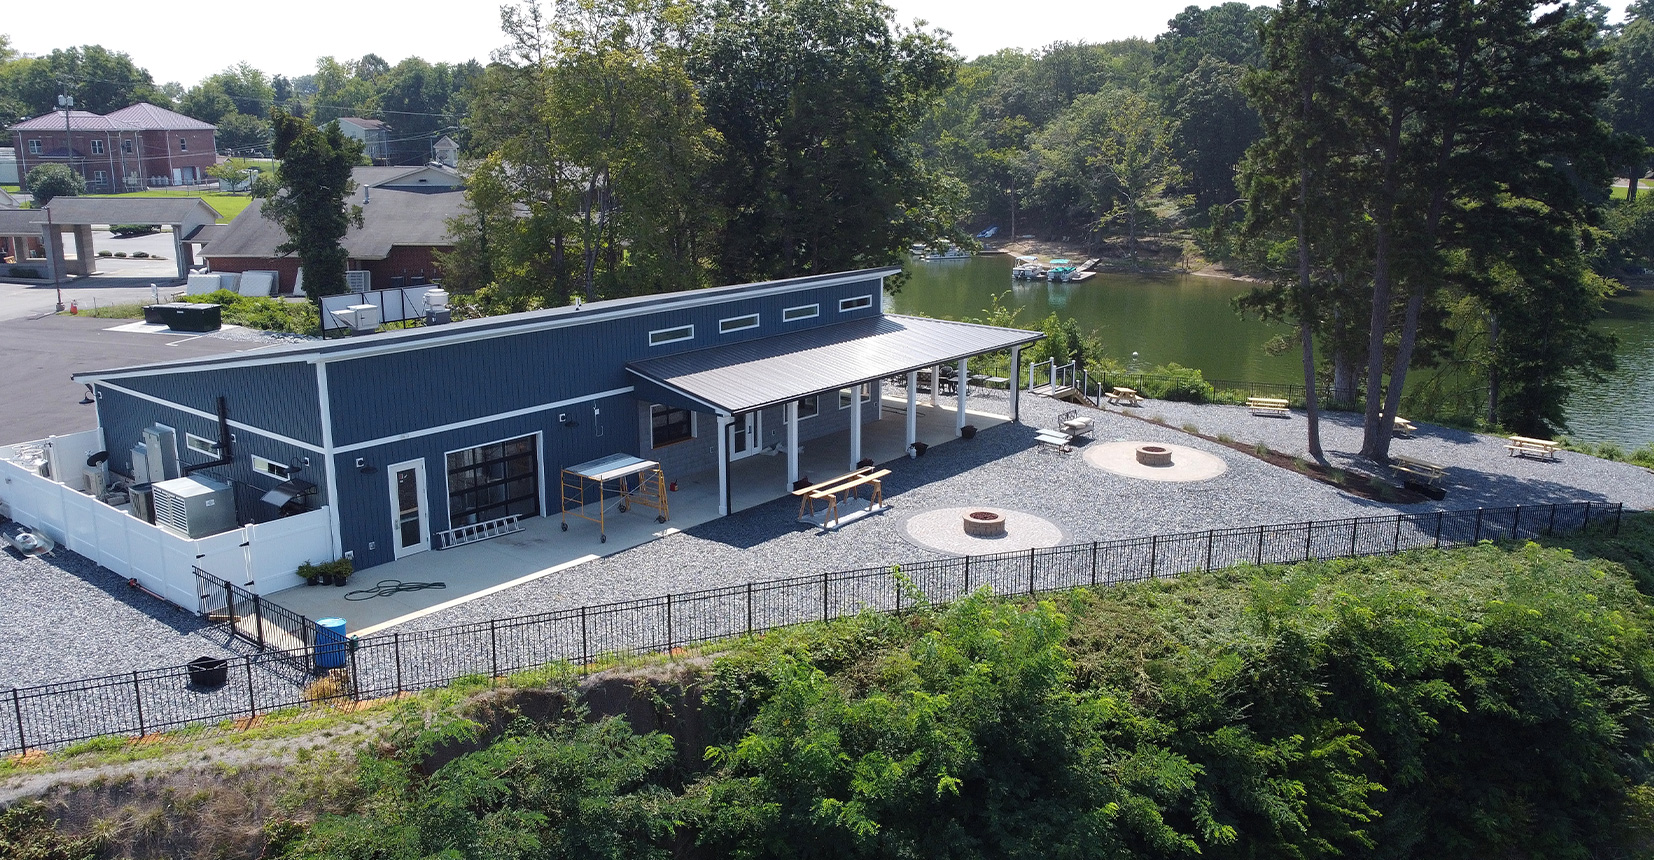 Buggs Island Brewing New Location Now in Clarksville VA